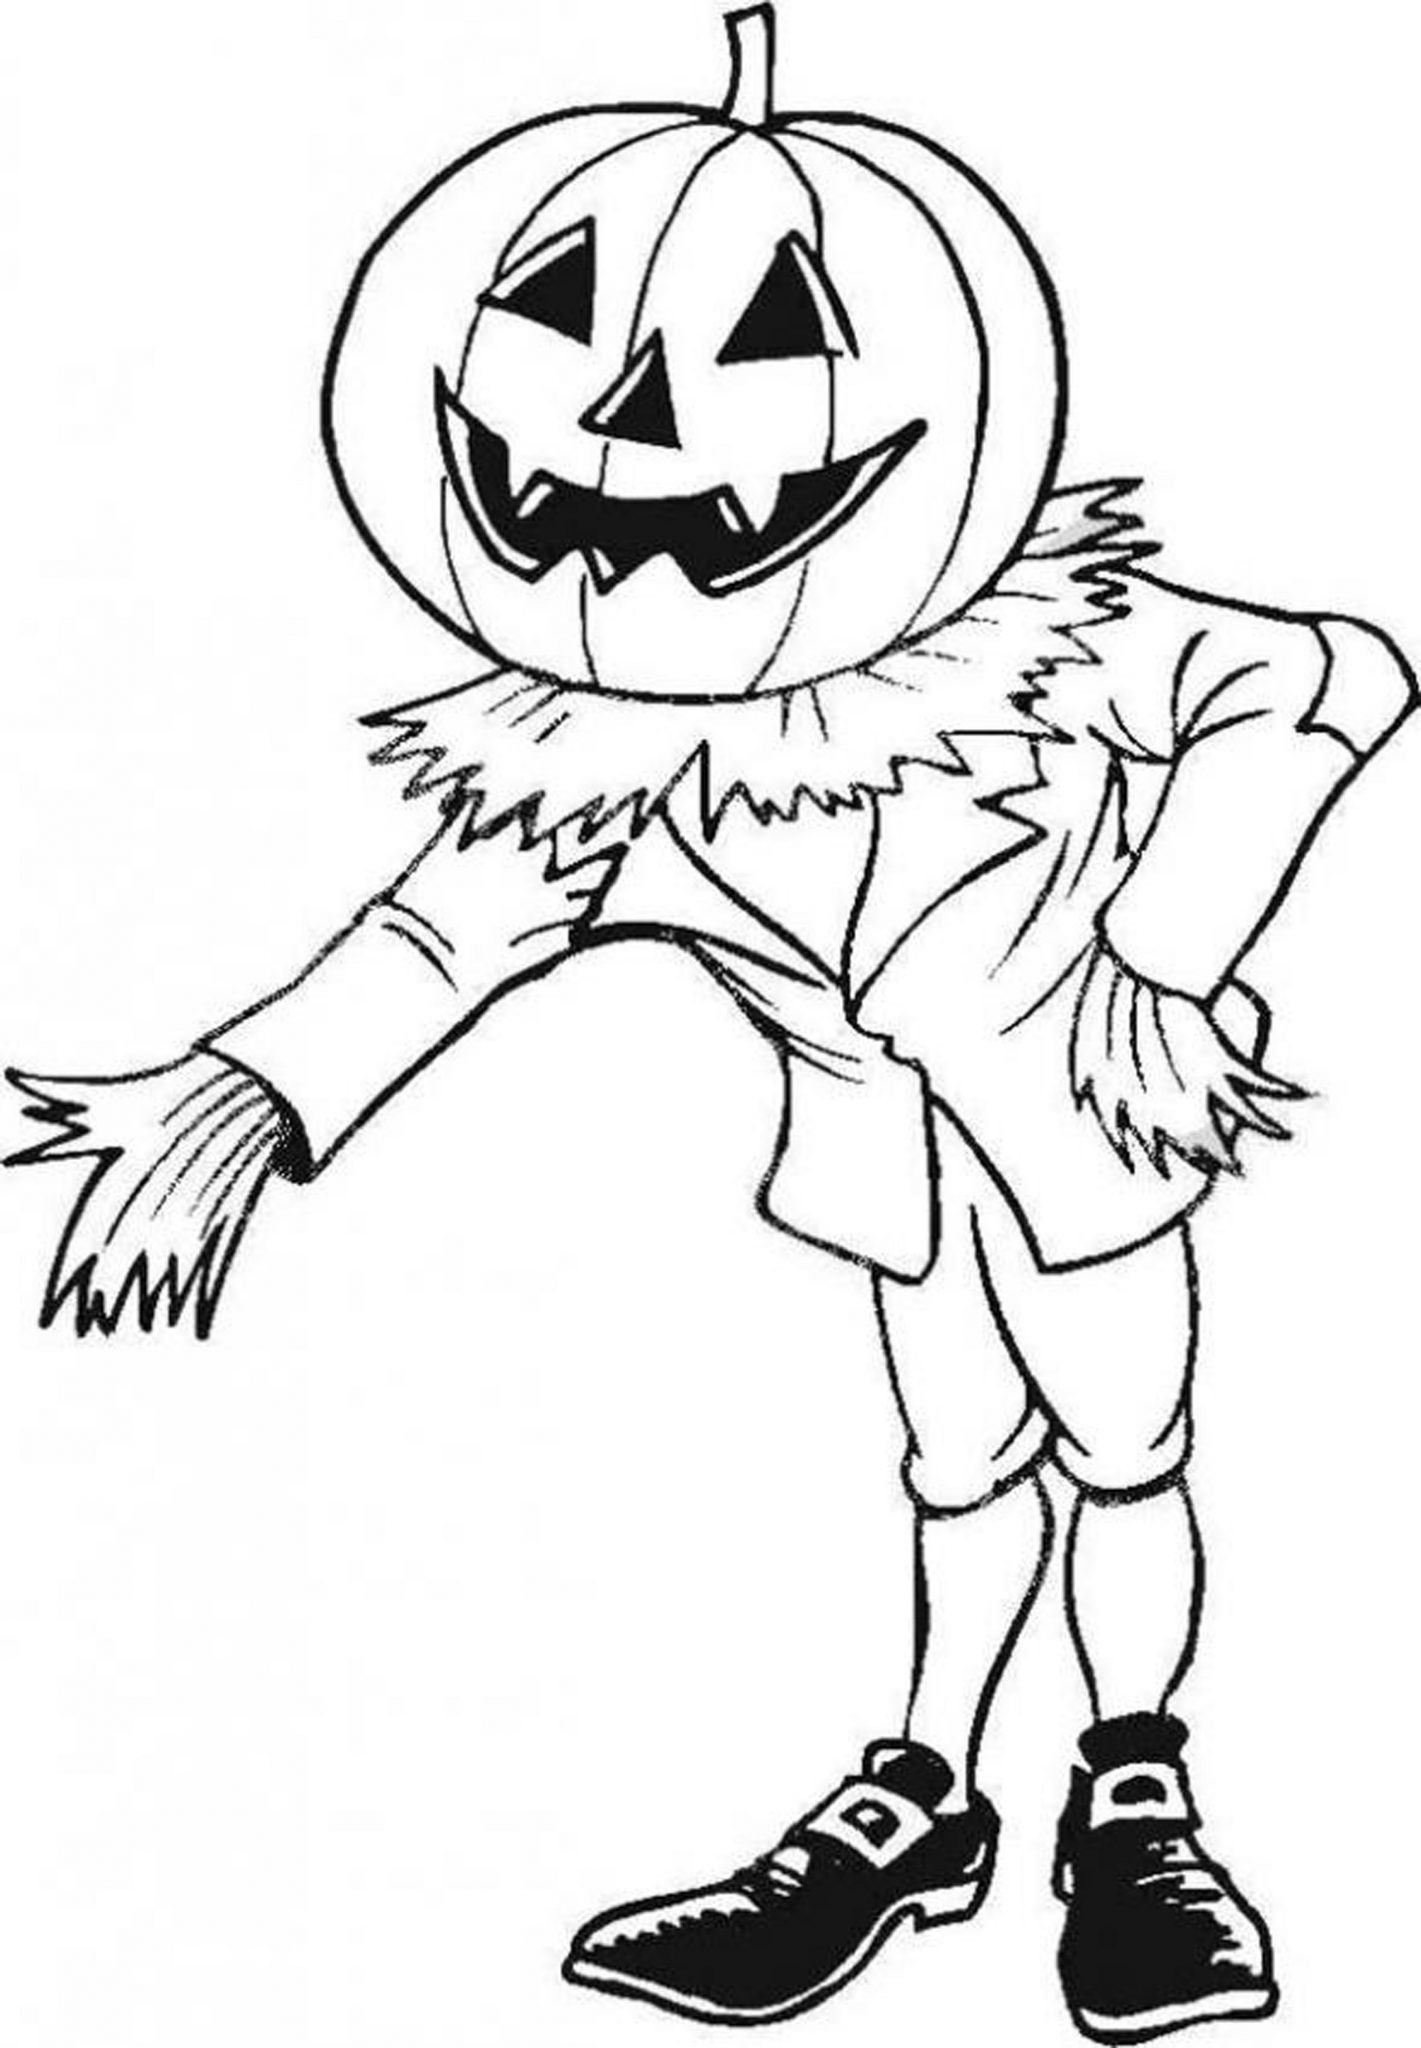 halloween-pumpkins-coloring-pages | | BestAppsForKids.com